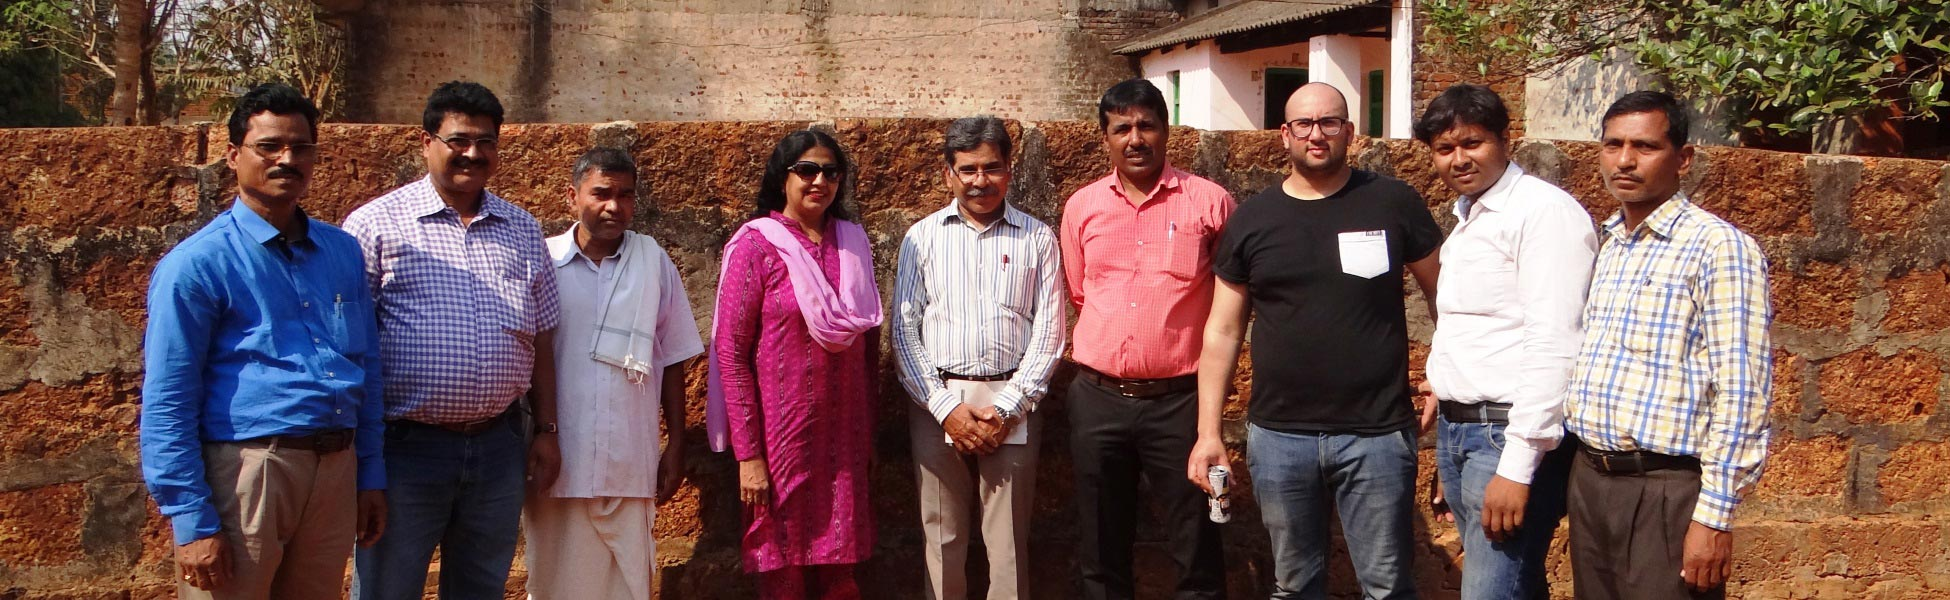 film consultancy services in india, film consultancy services in rajasthan, film consultancy services in udaipur, video consultancy services in india, video consultancy services in rajasthan, video consultancy services in udaipur, tv consultancy services in india, tv consultancy services in rajasthan, tv consultancy services in udaipur, consultancy services in india, consultancy services in rajasthan, consultancy services in udaipur